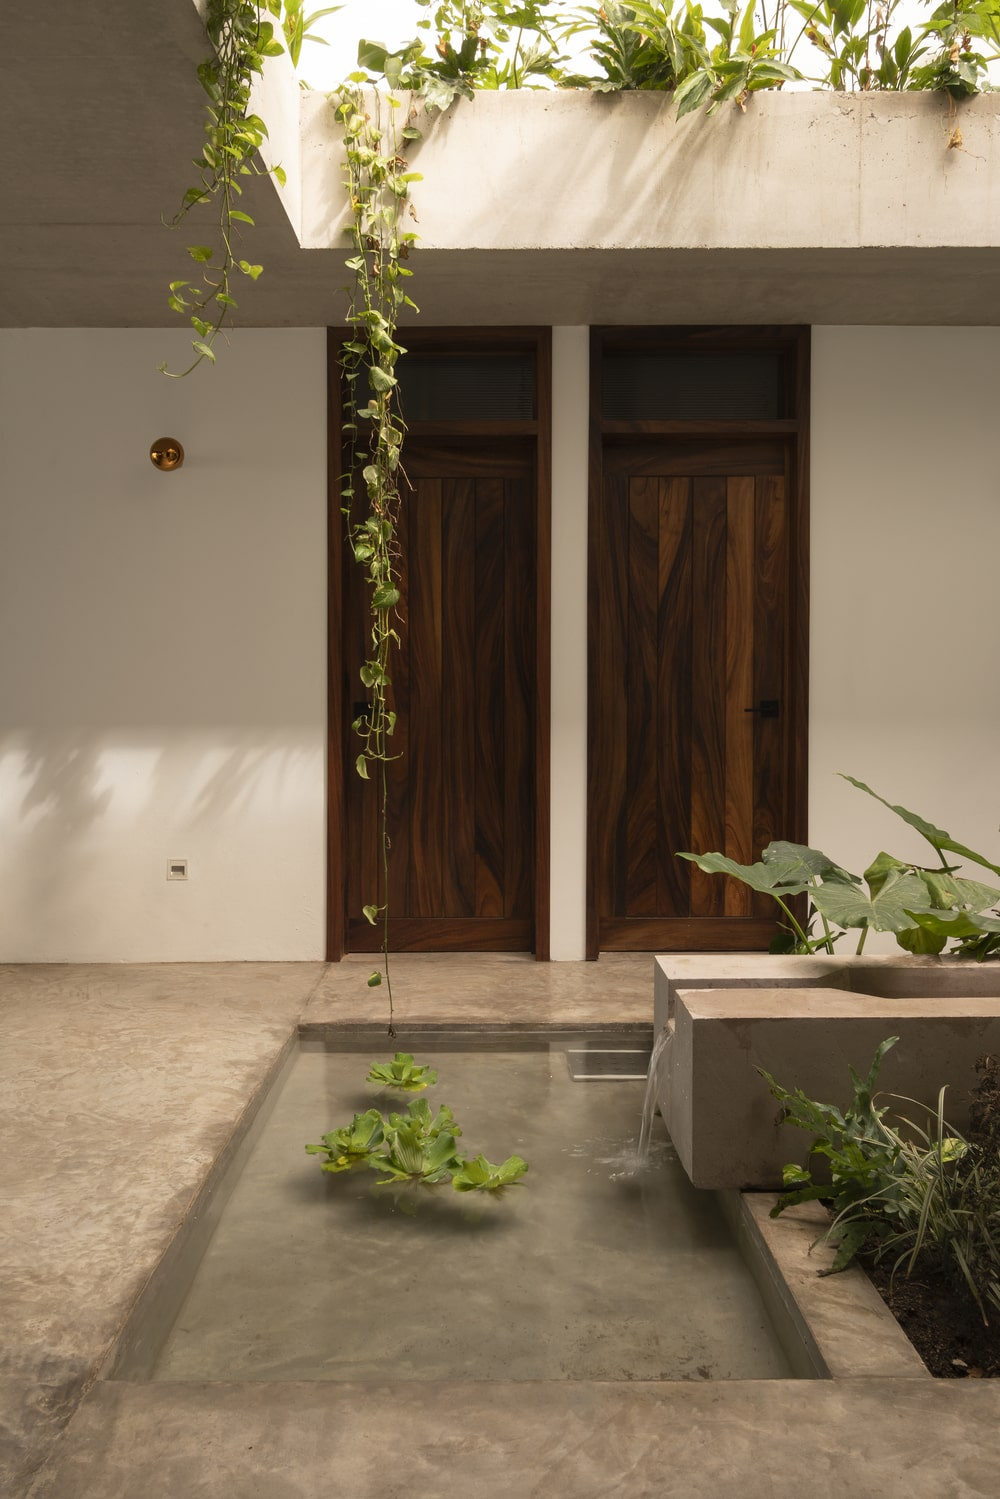 This is a close look at the miniature garden and the hanging plants from the open ceiling above the garden.